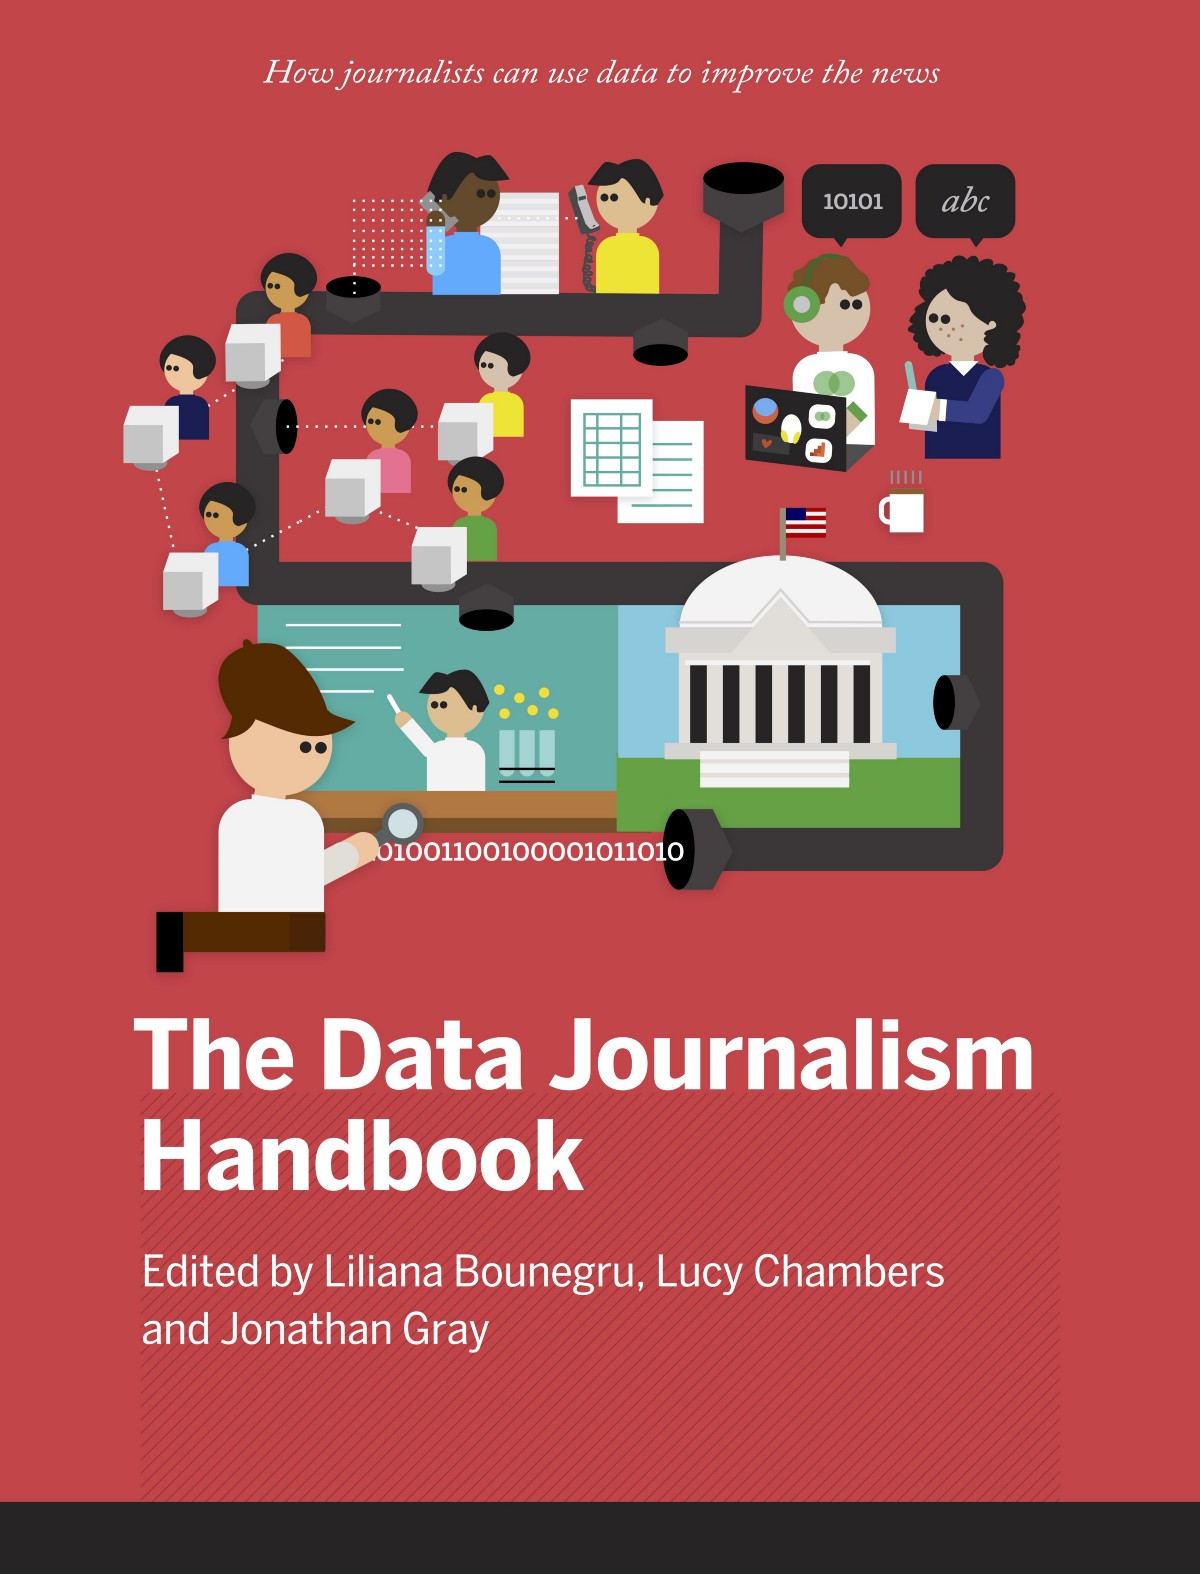 A new Data Journalism Handbook will be published in 2018!